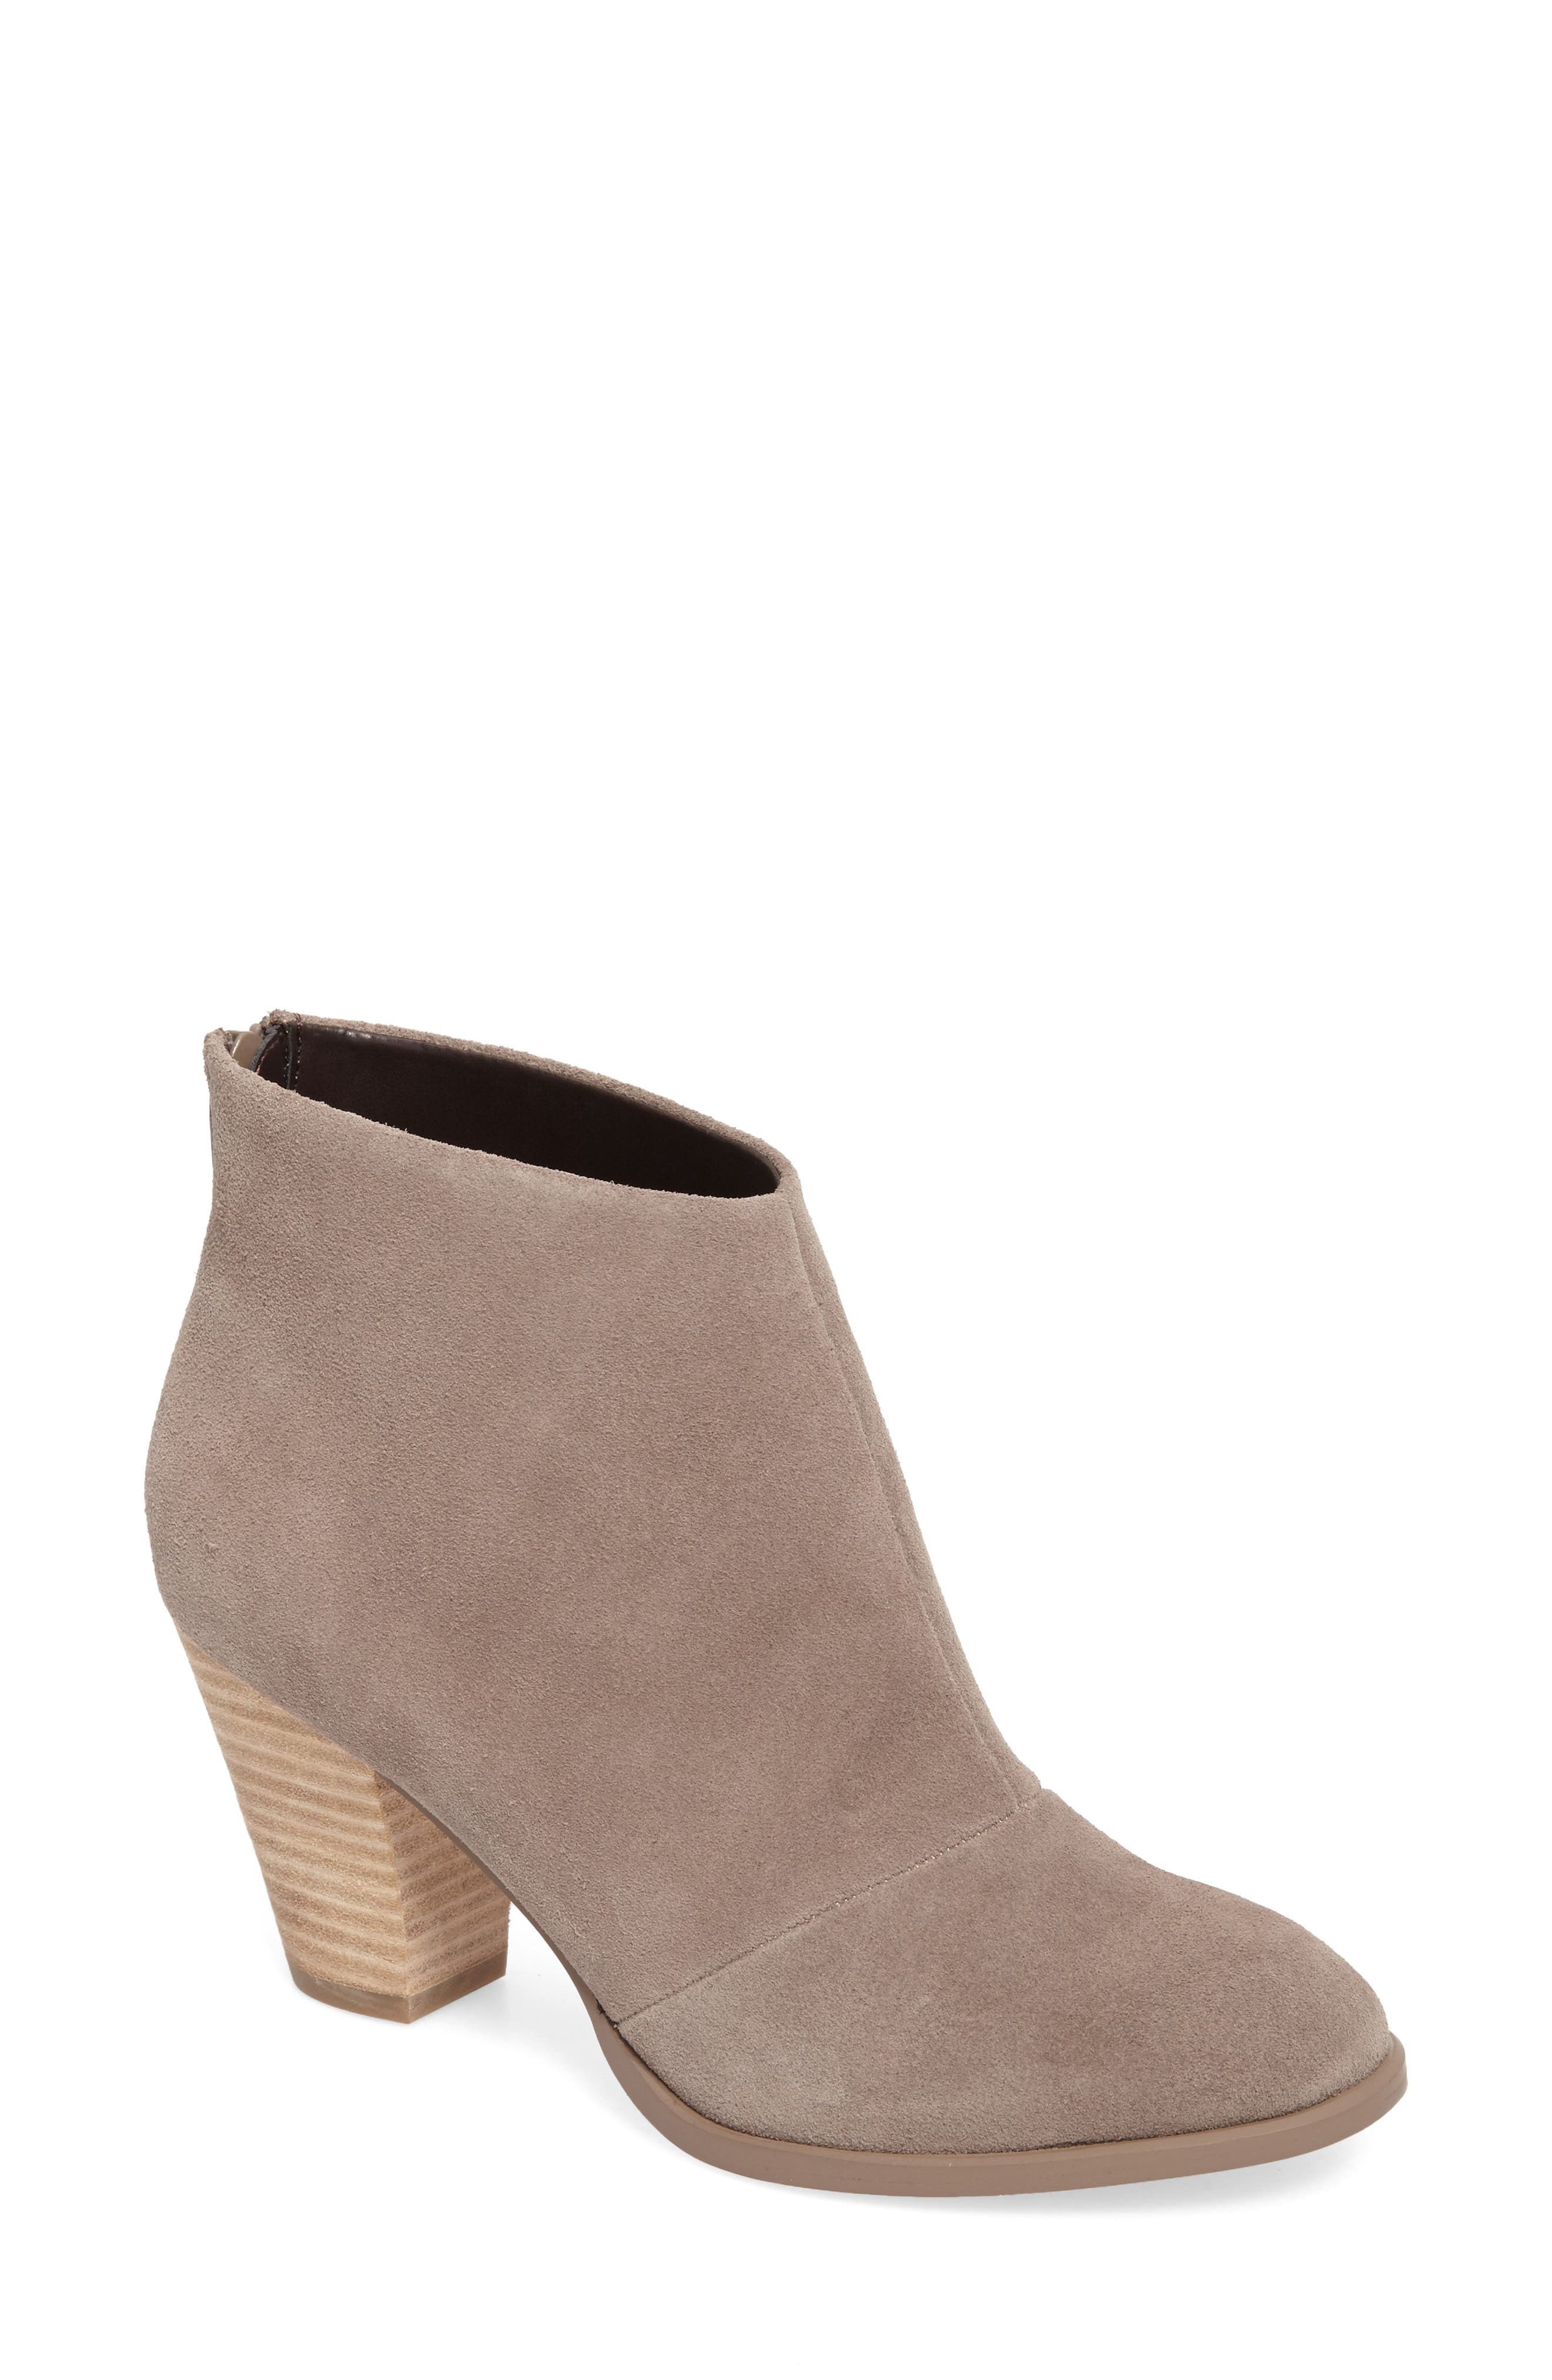 'Devyn' Ankle Bootie,                         Main,                         color, 020